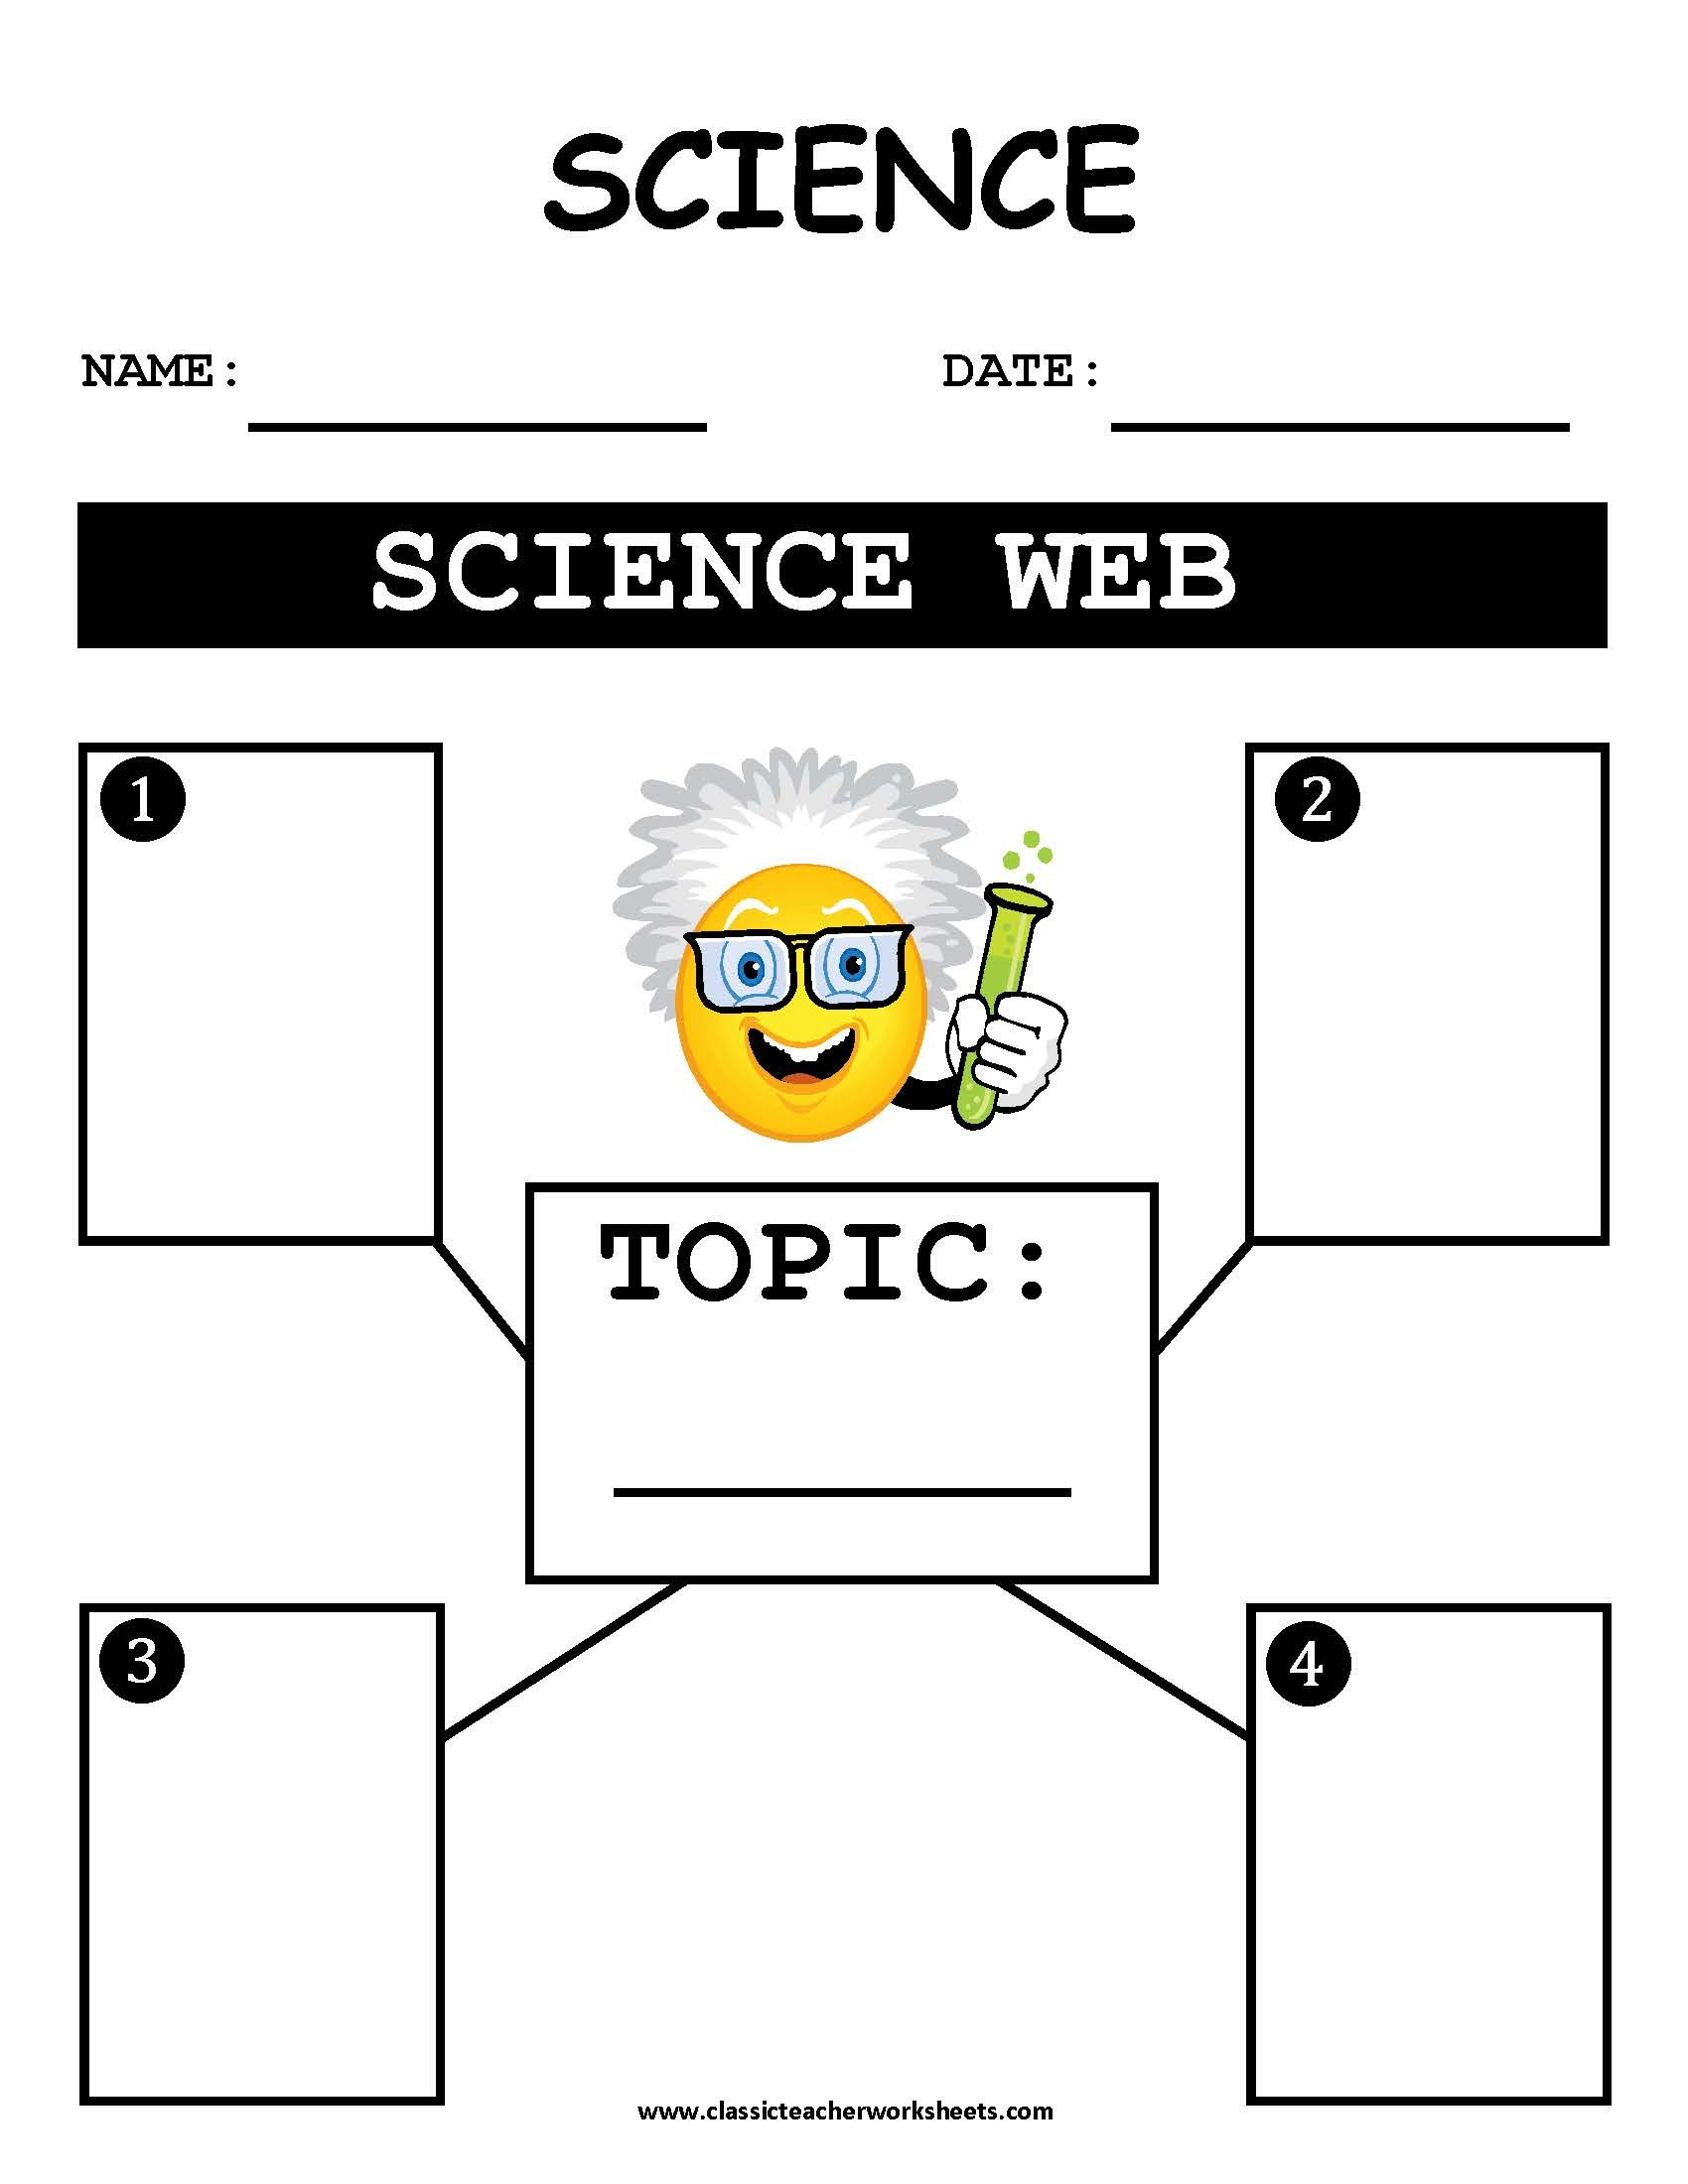 Worksheet Science Web Outline. Check out our collection